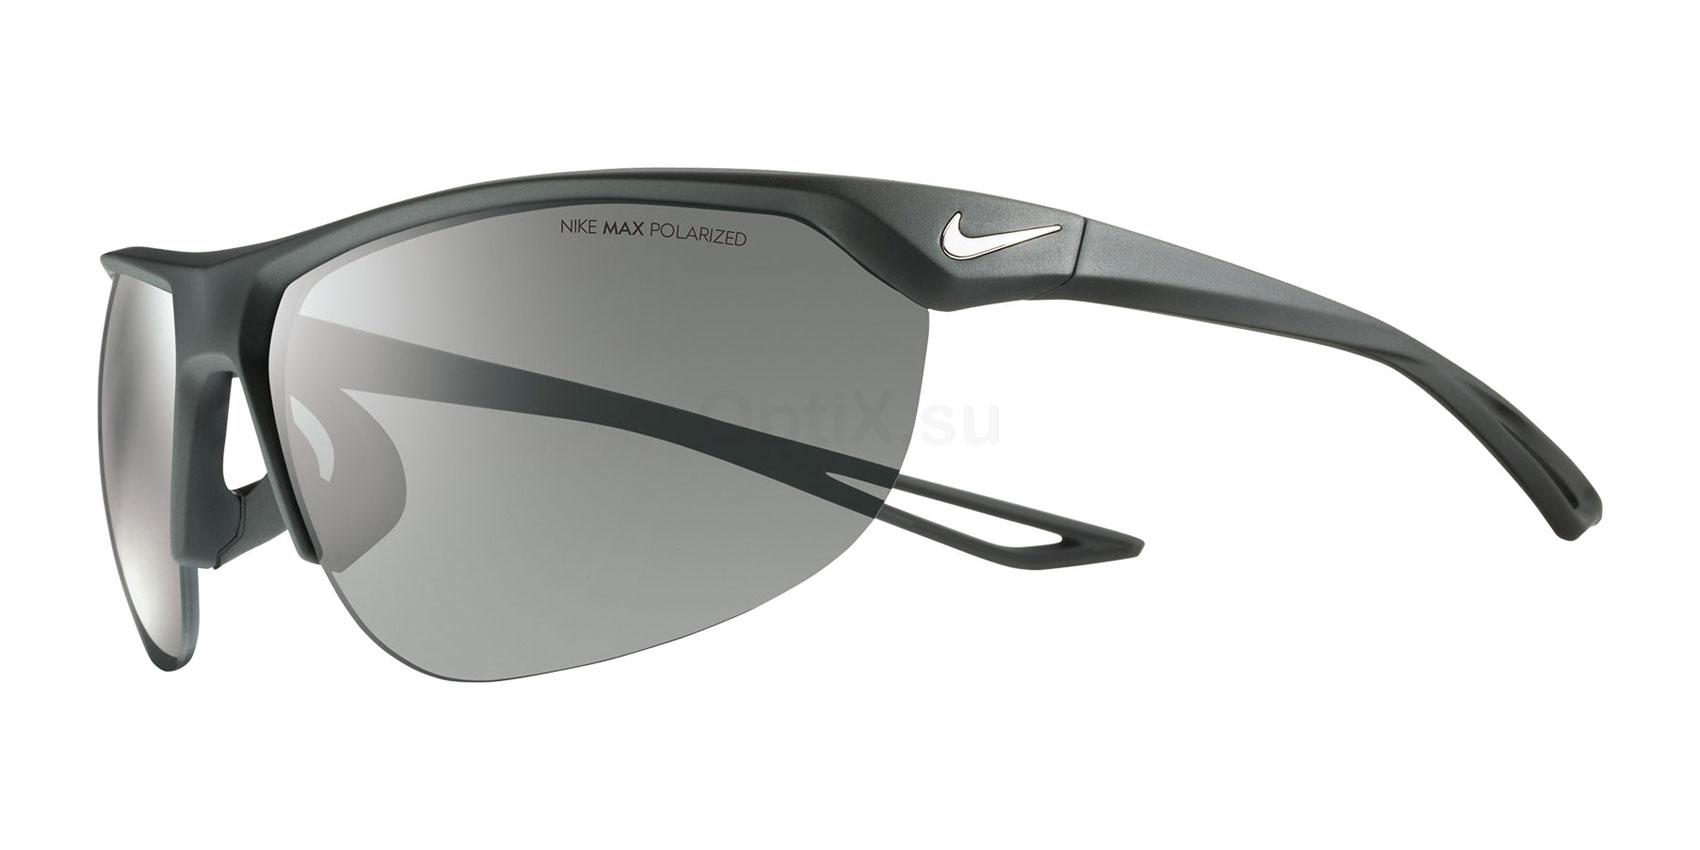 001 CROSS TRAINER P EV0939 Sunglasses, Nike